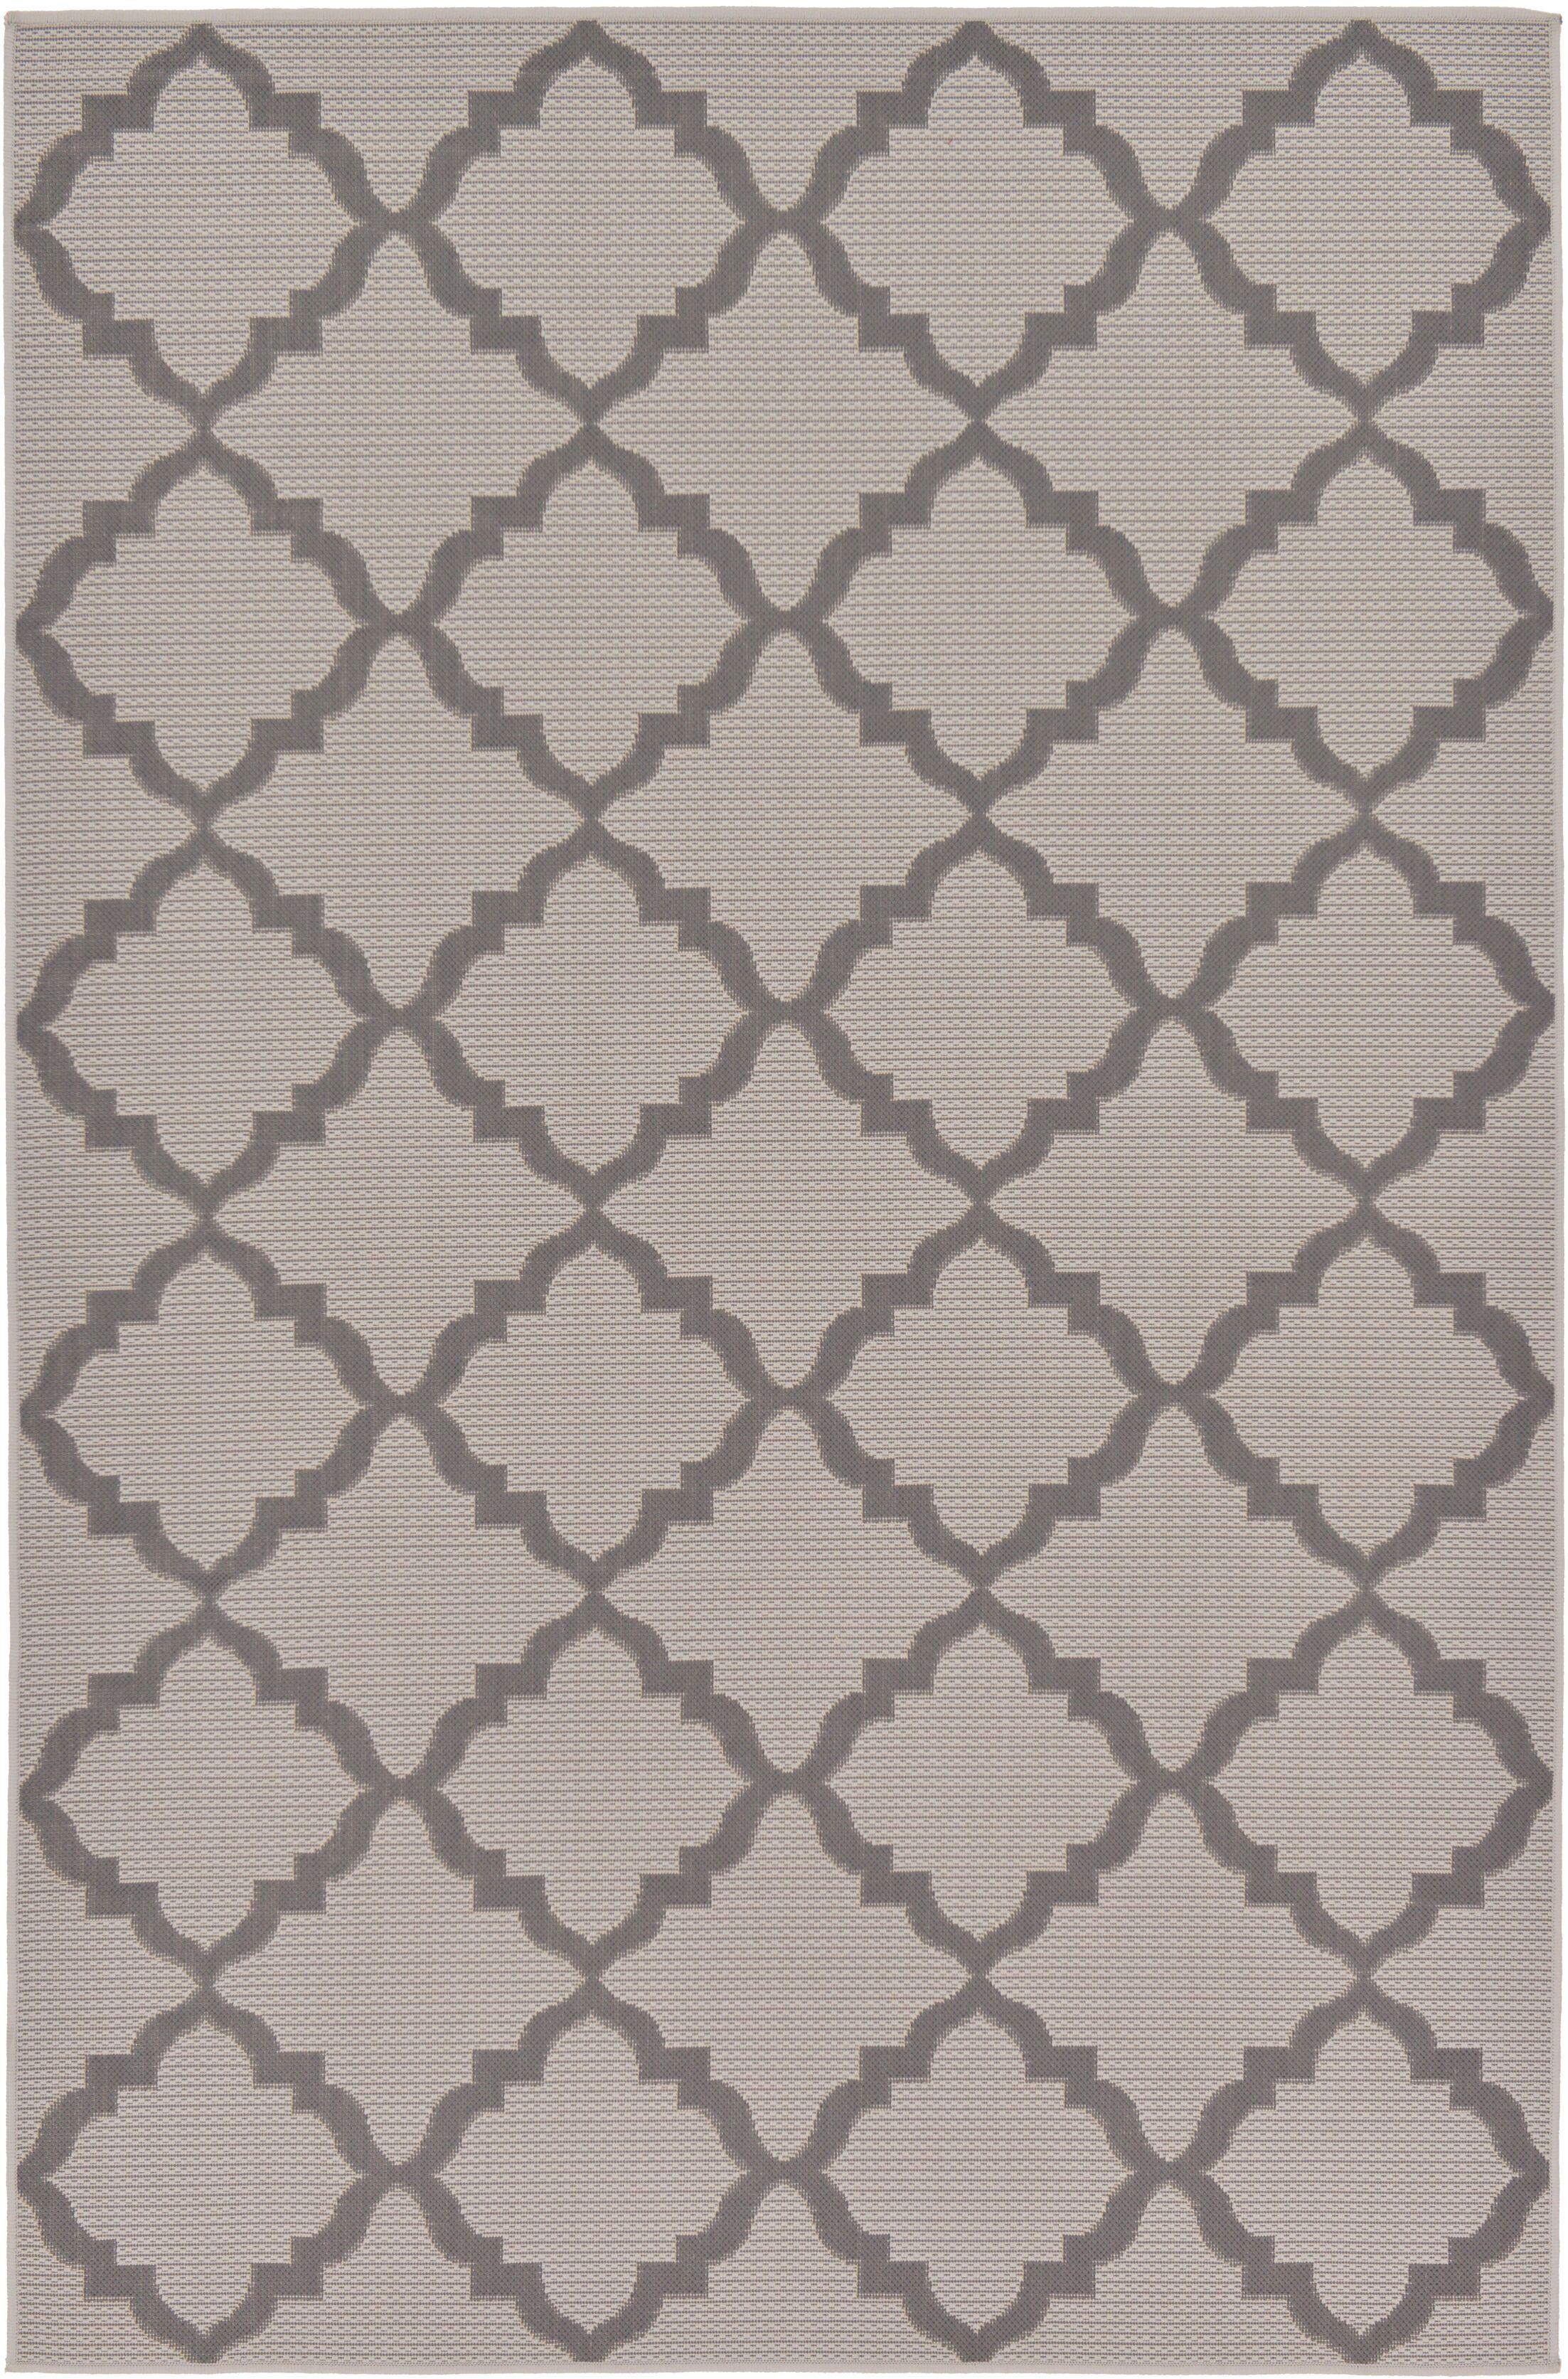 Templepatrick Gray Outdoor Area Rug Rug Size: Rectangle 5'3